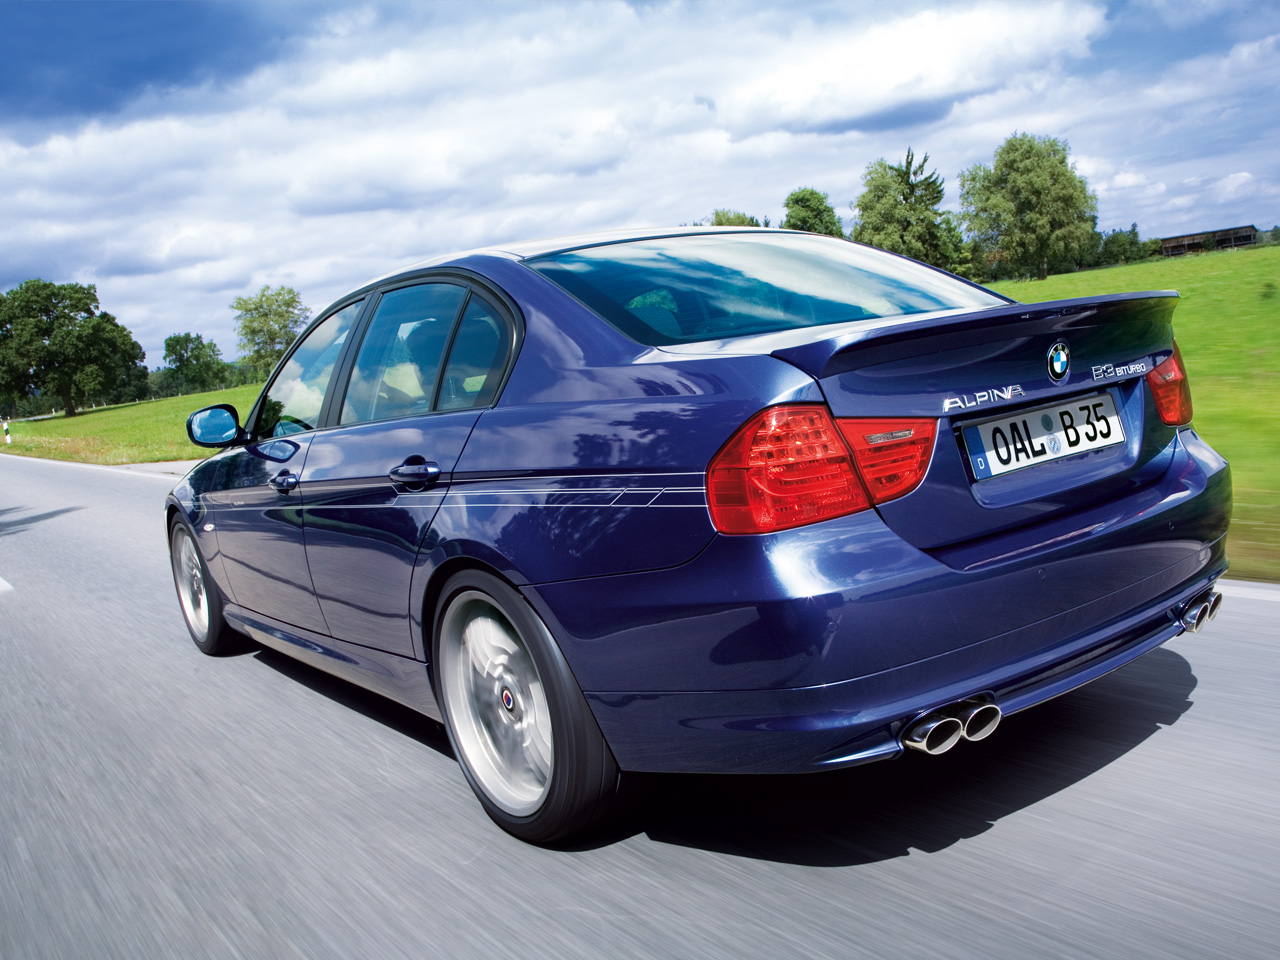 South Shore BMW >> Alpina B3 (facelifted LCI E90 sedan and E91 touring) - Hi-res pics